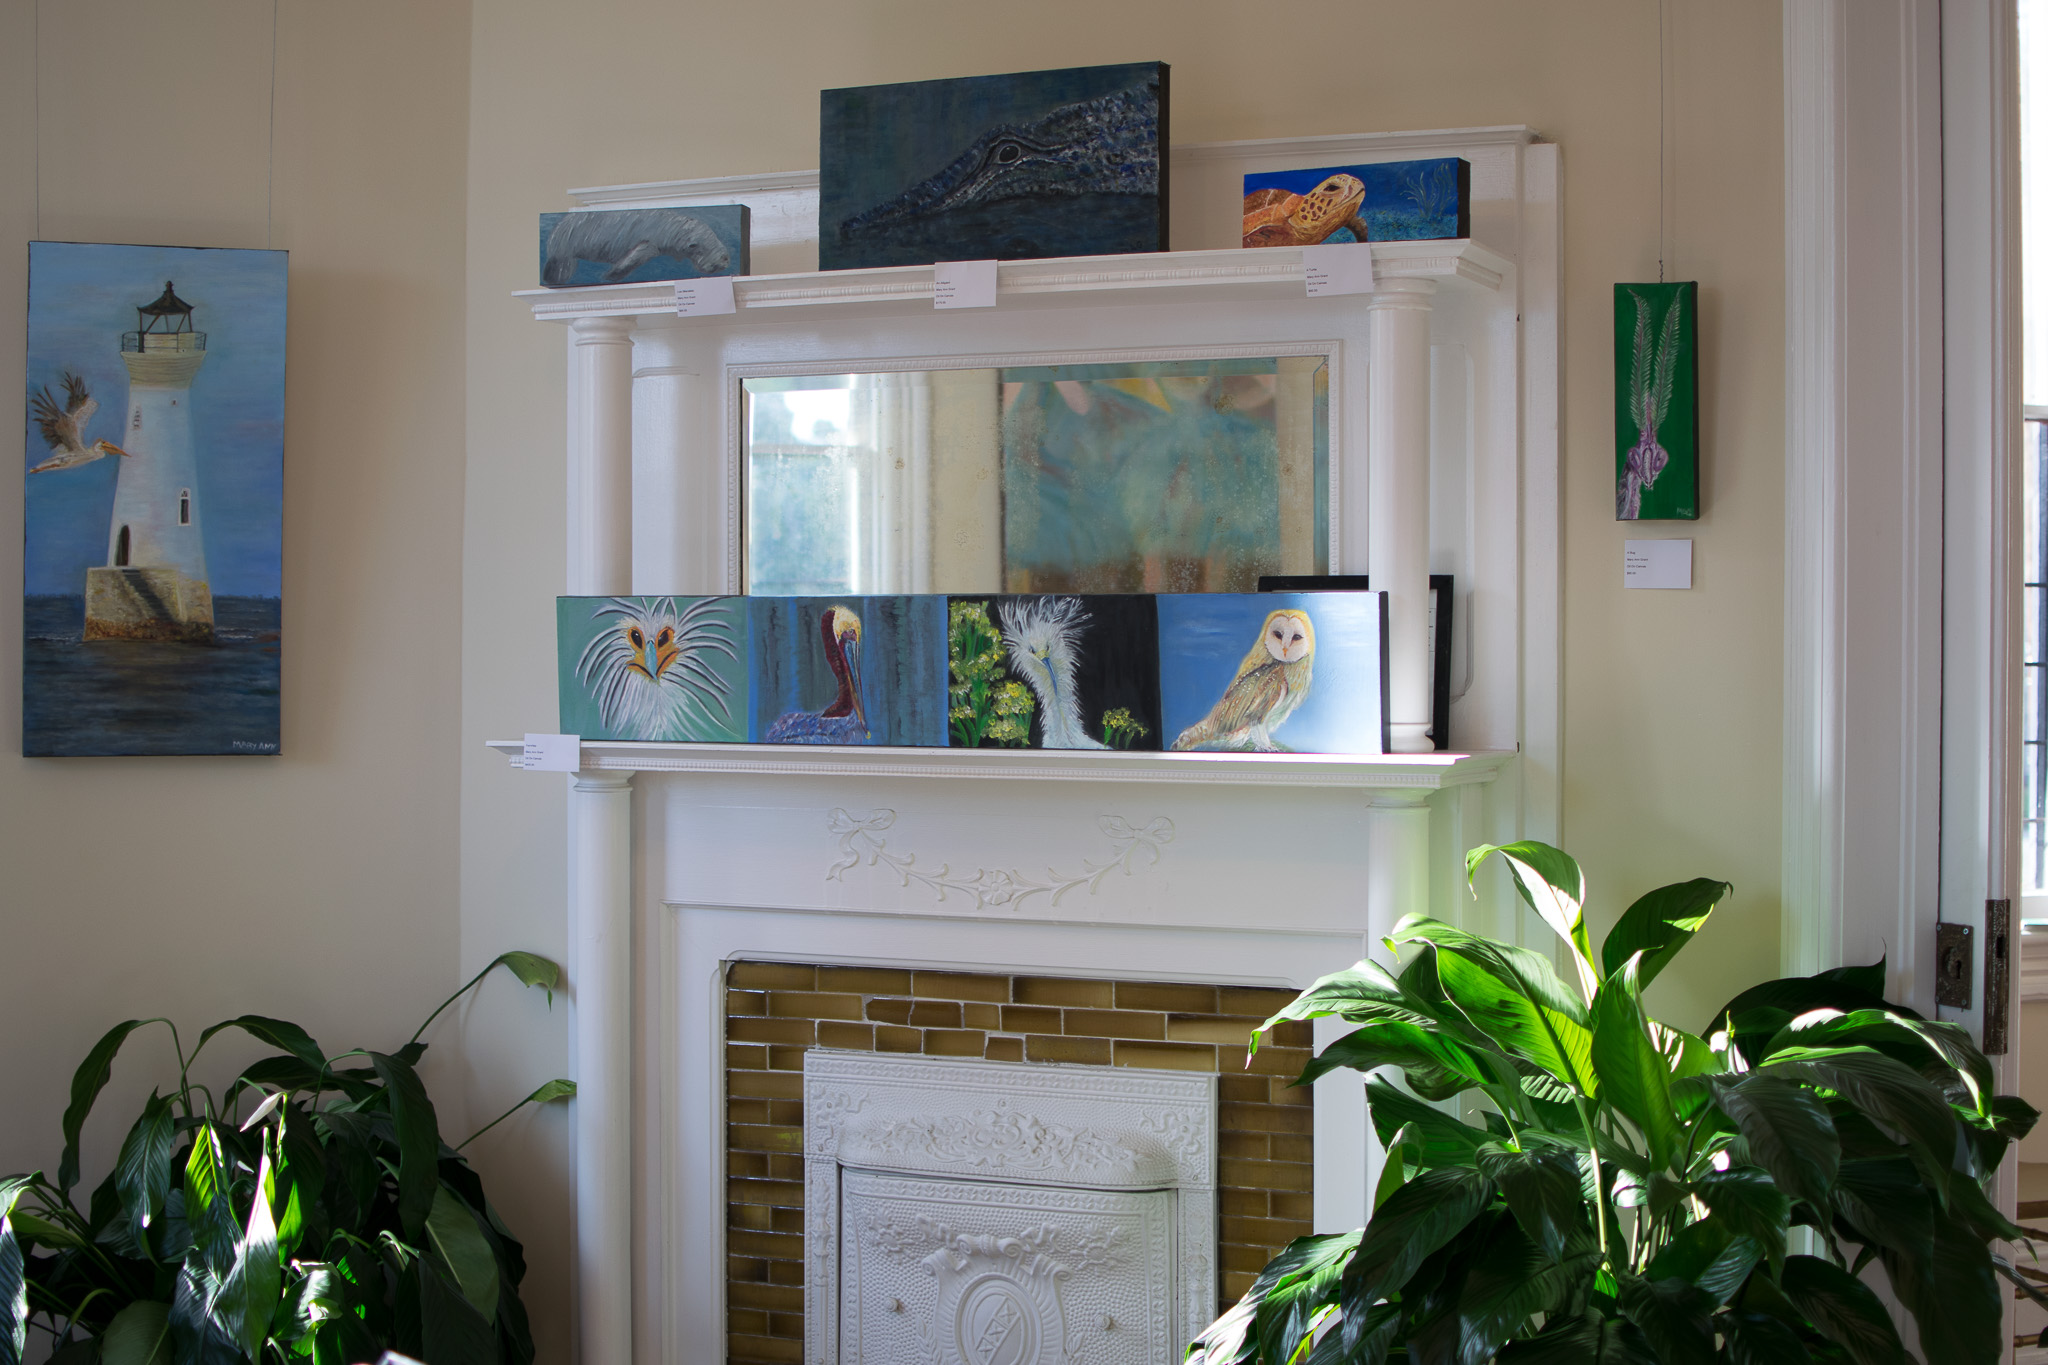 A photo of a room with art hanging on the walls and on the mantel of a fireplace.